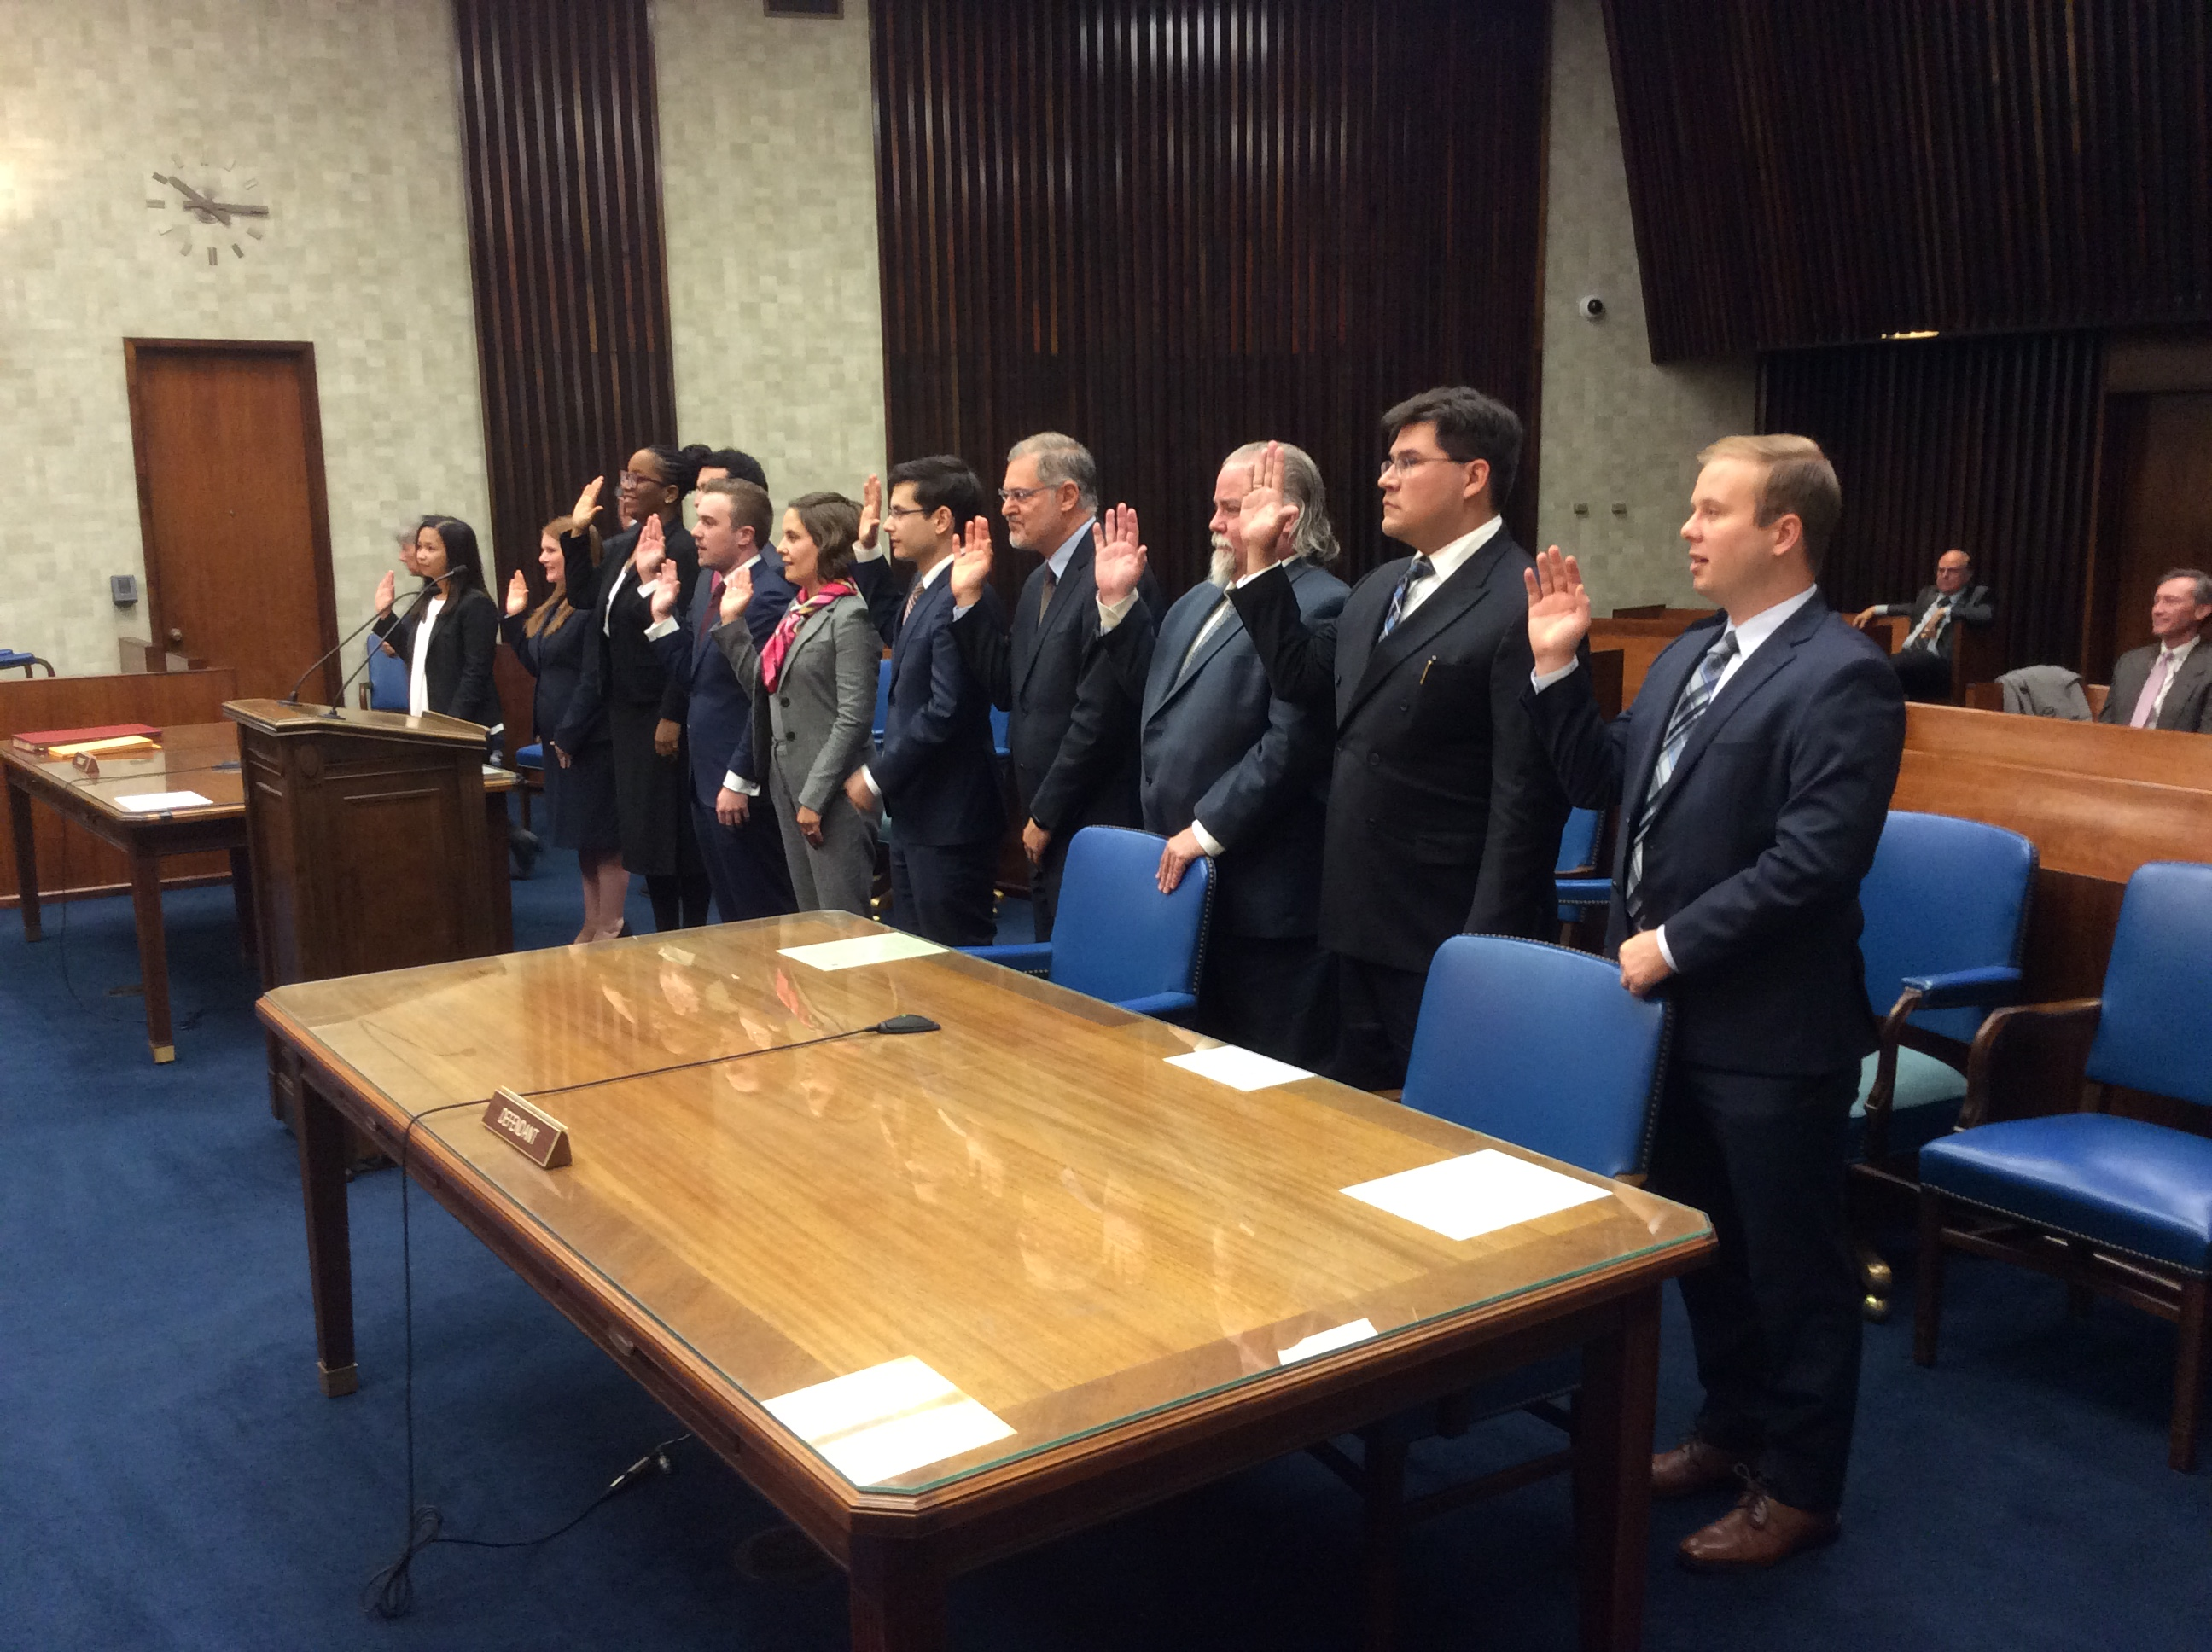 Newly admitted attorneys taking their oath